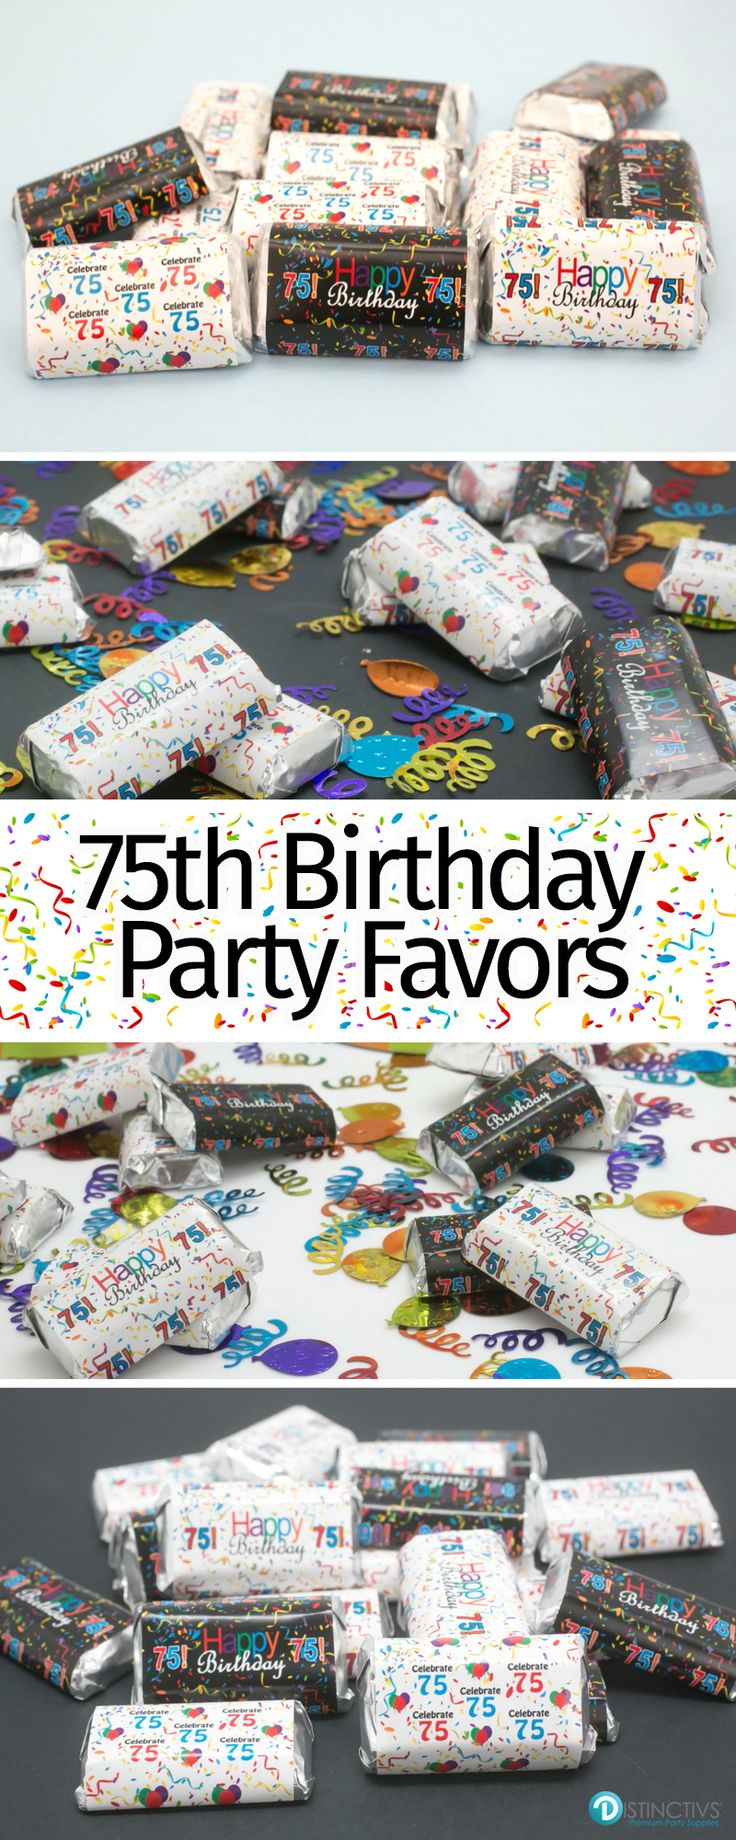 25 best ideas about 75th birthday decorations on for 75th birthday party decoration ideas